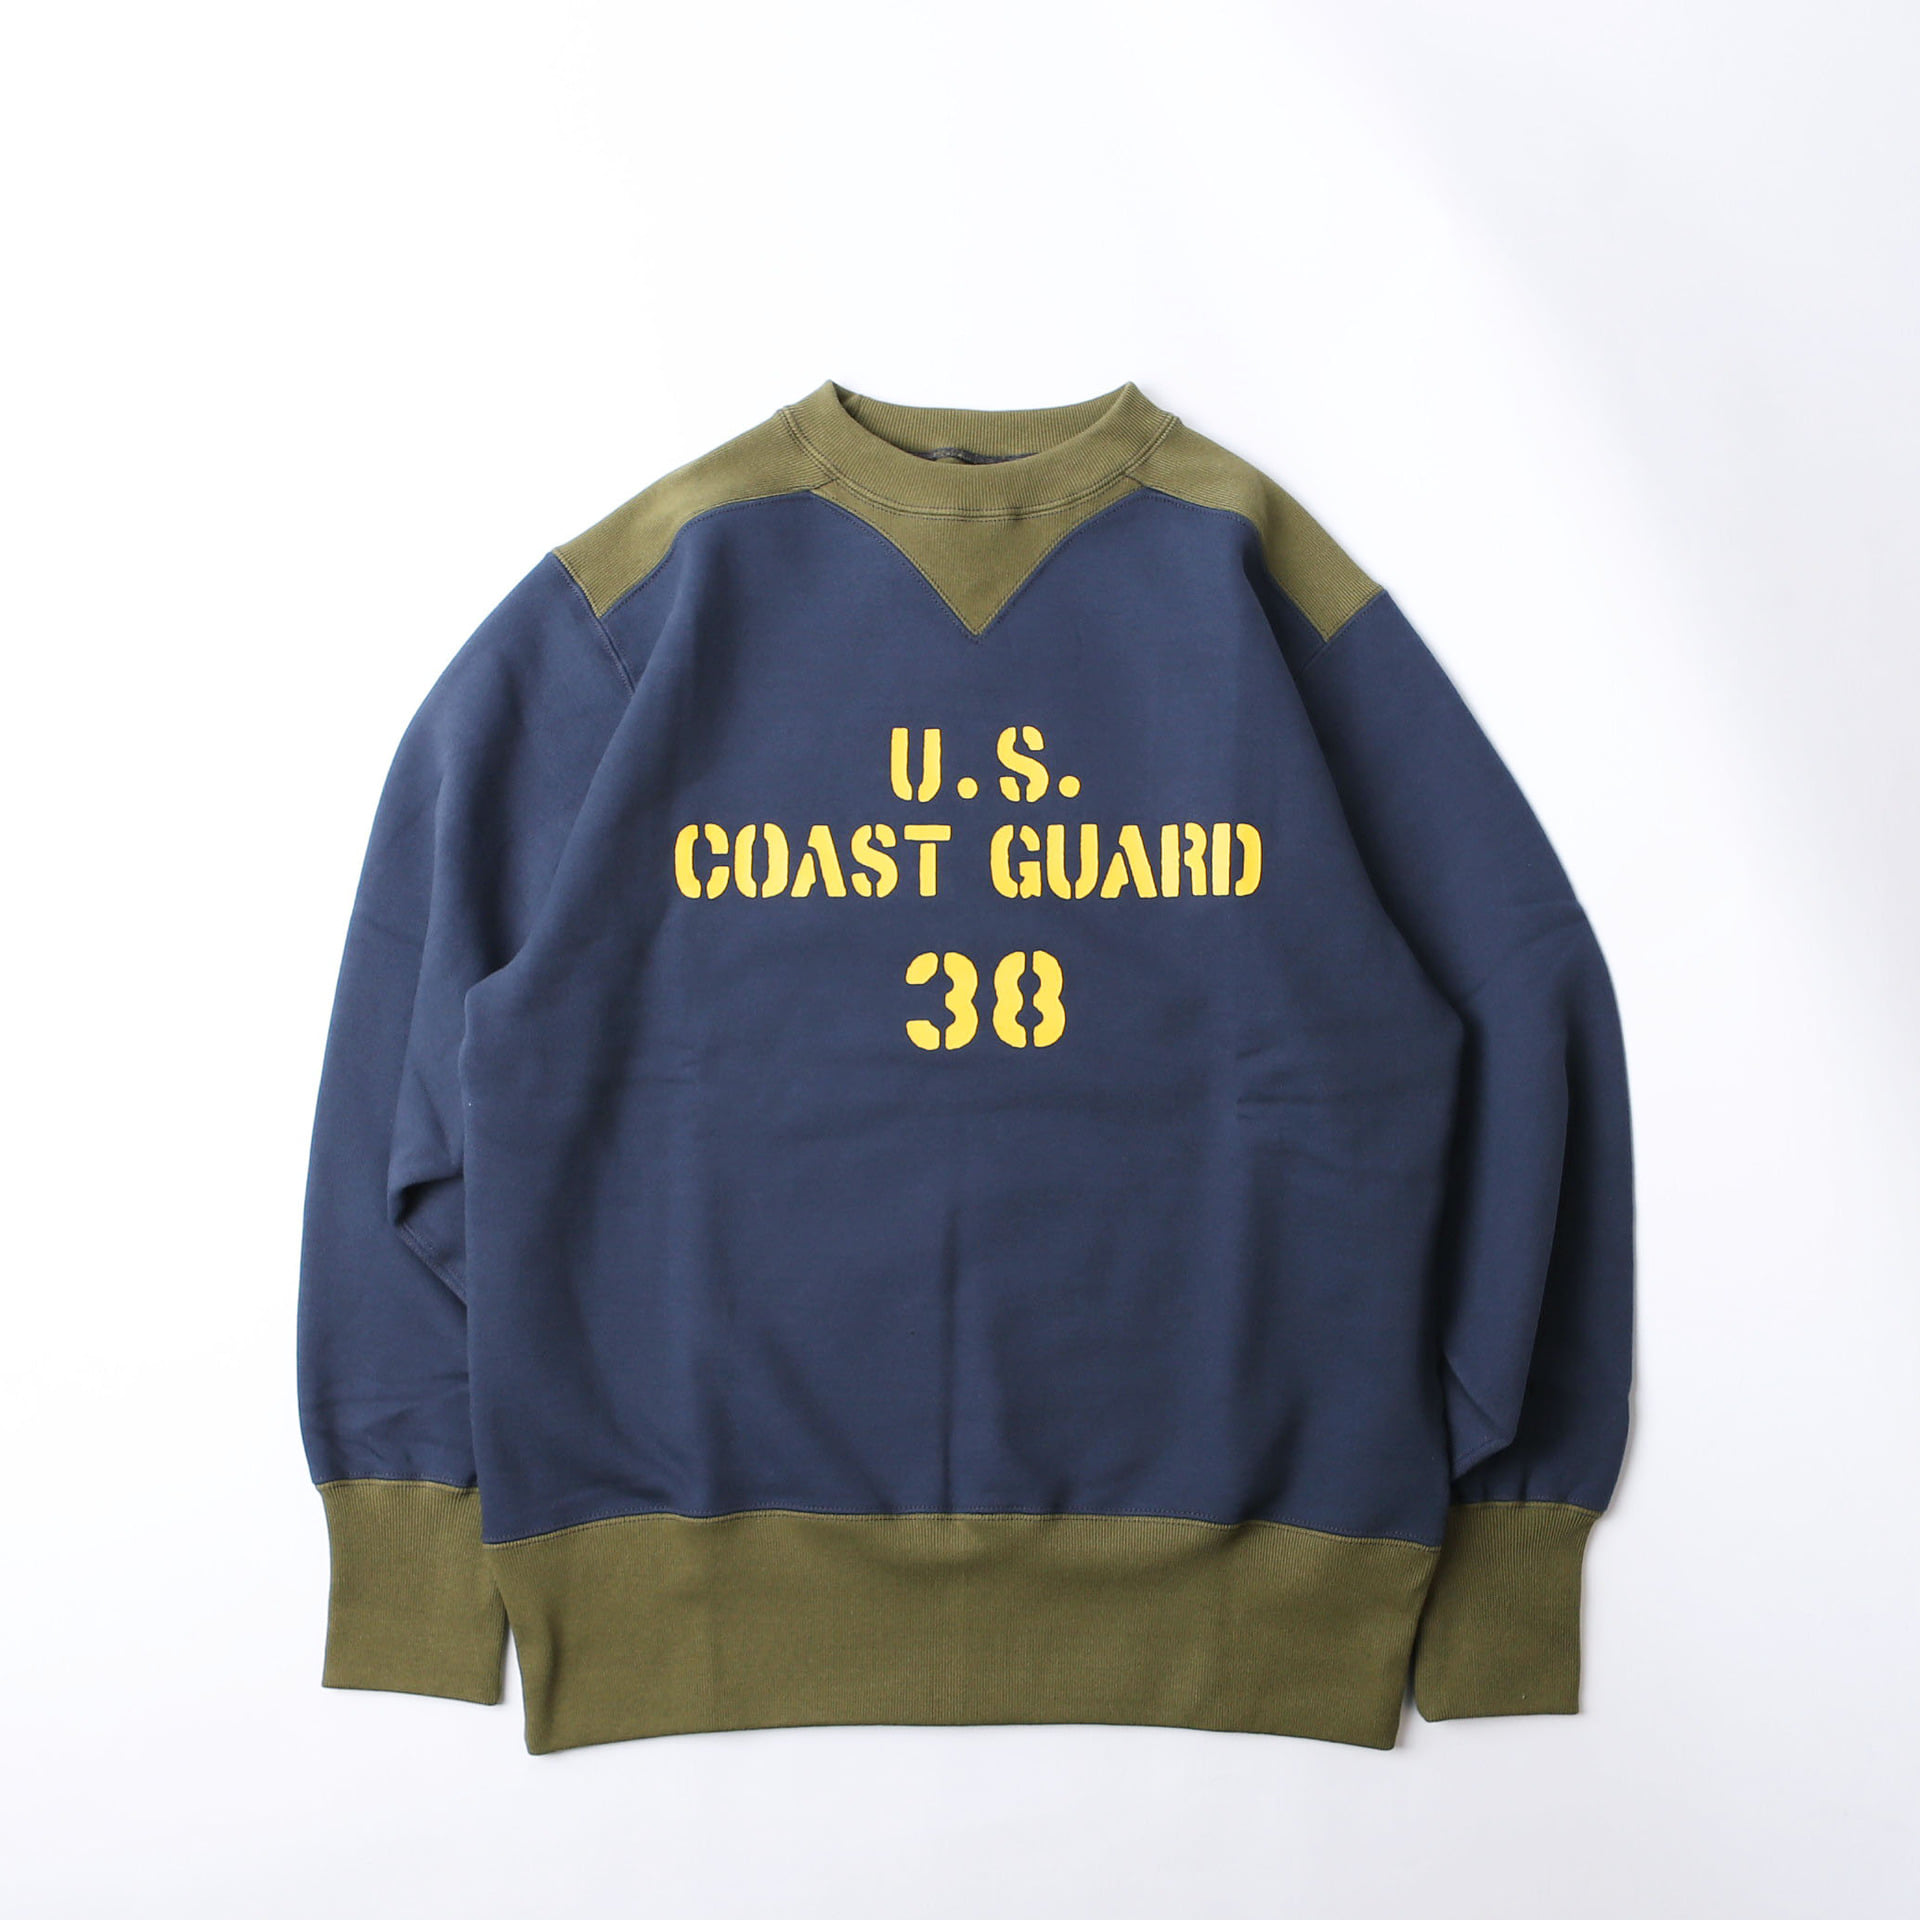 "[Power Wear]Athletic SweatShirt""U.S. COAST GUARD""(OLD NAVY x OLIVE)"